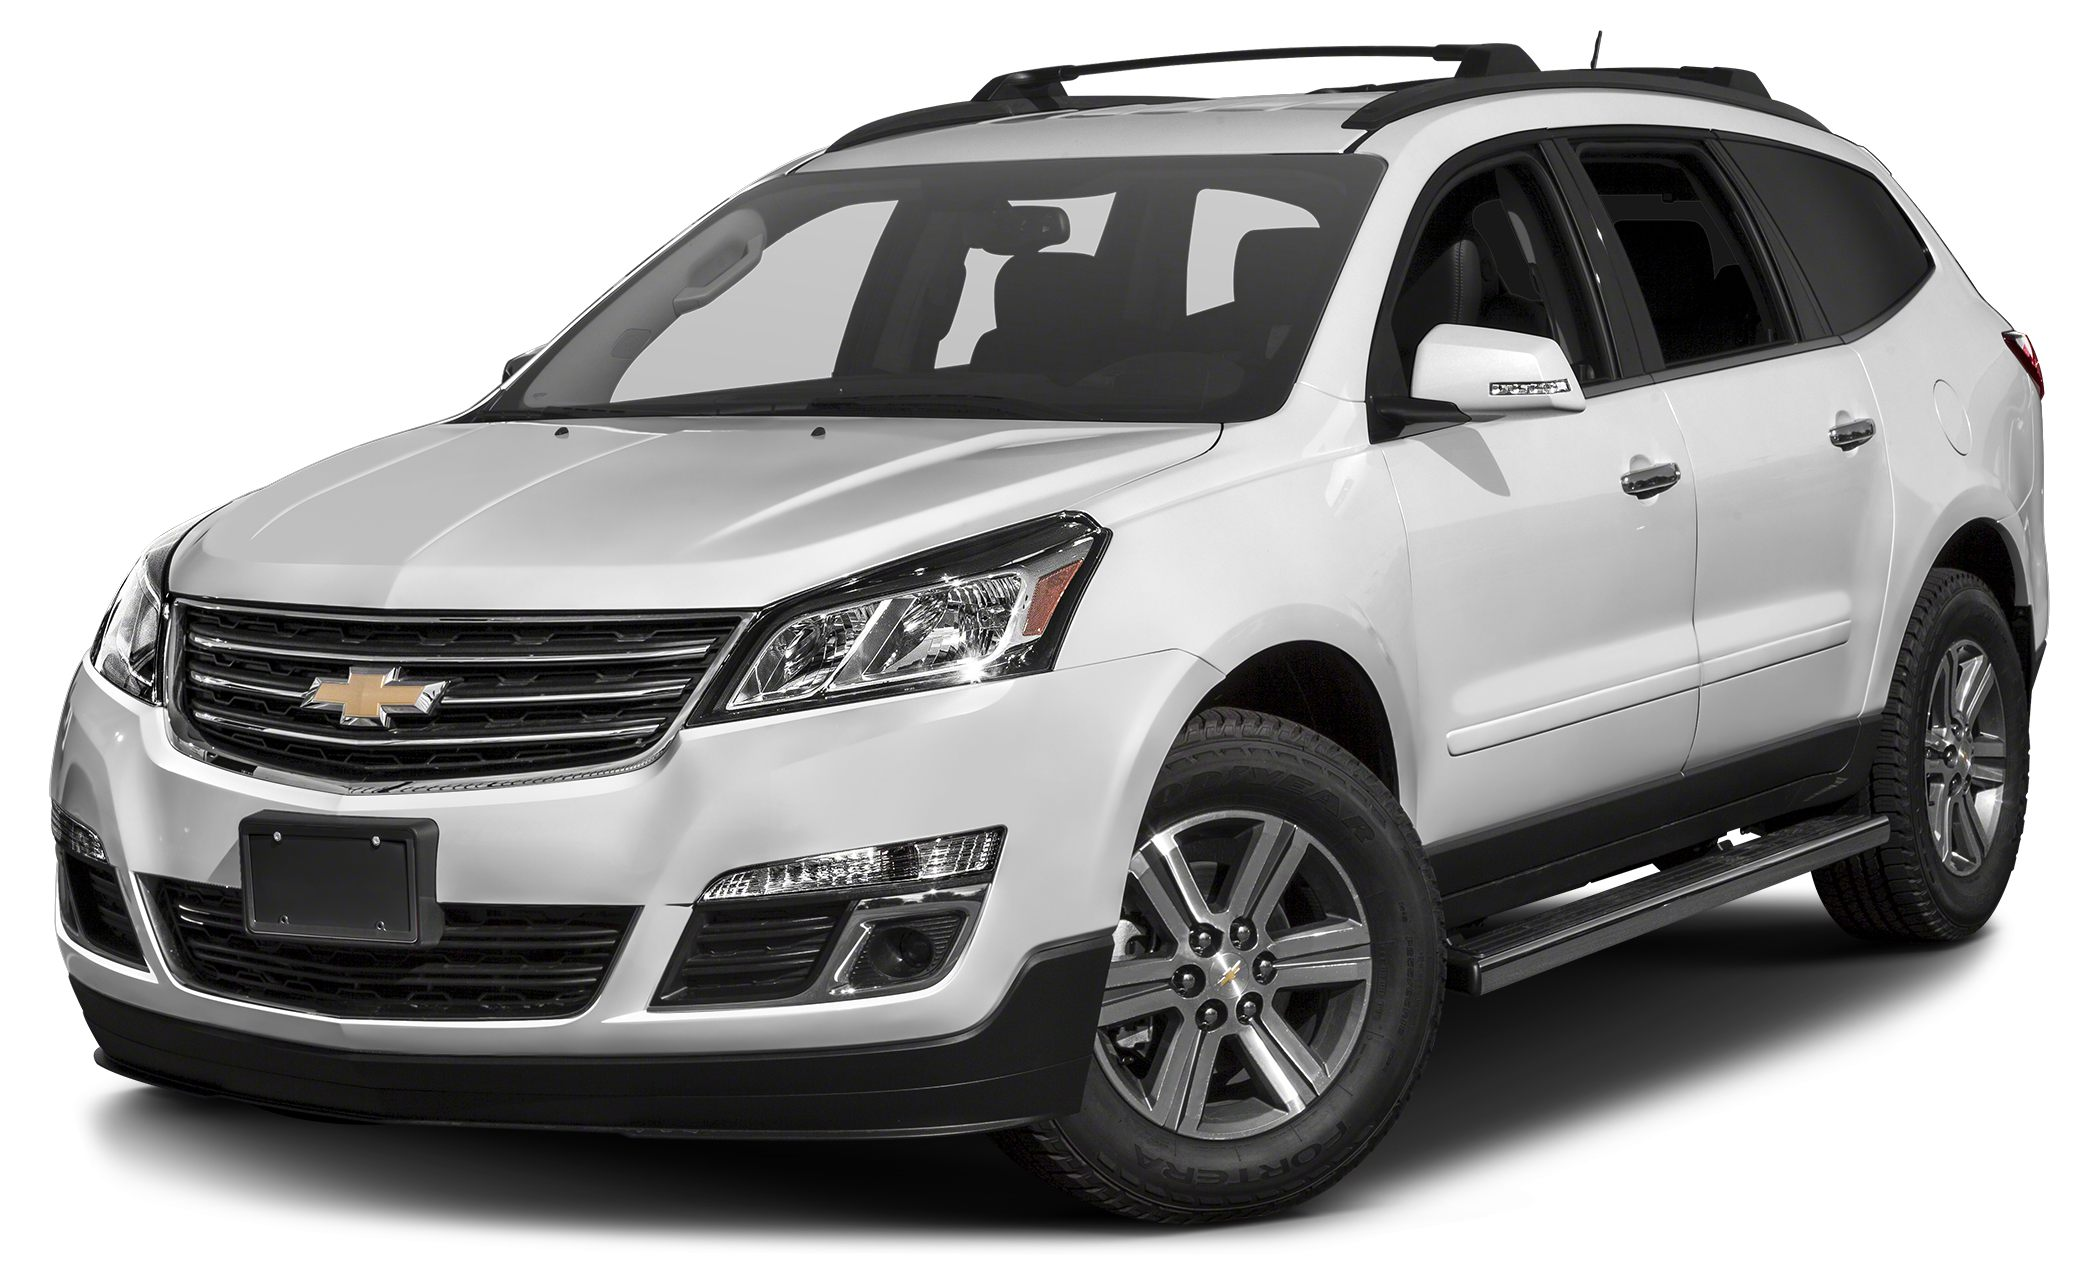 2016 Chevrolet Traverse LT w2LT New Price CARFAX One-Owner Clean CARFAX Summit White 2016 Chev